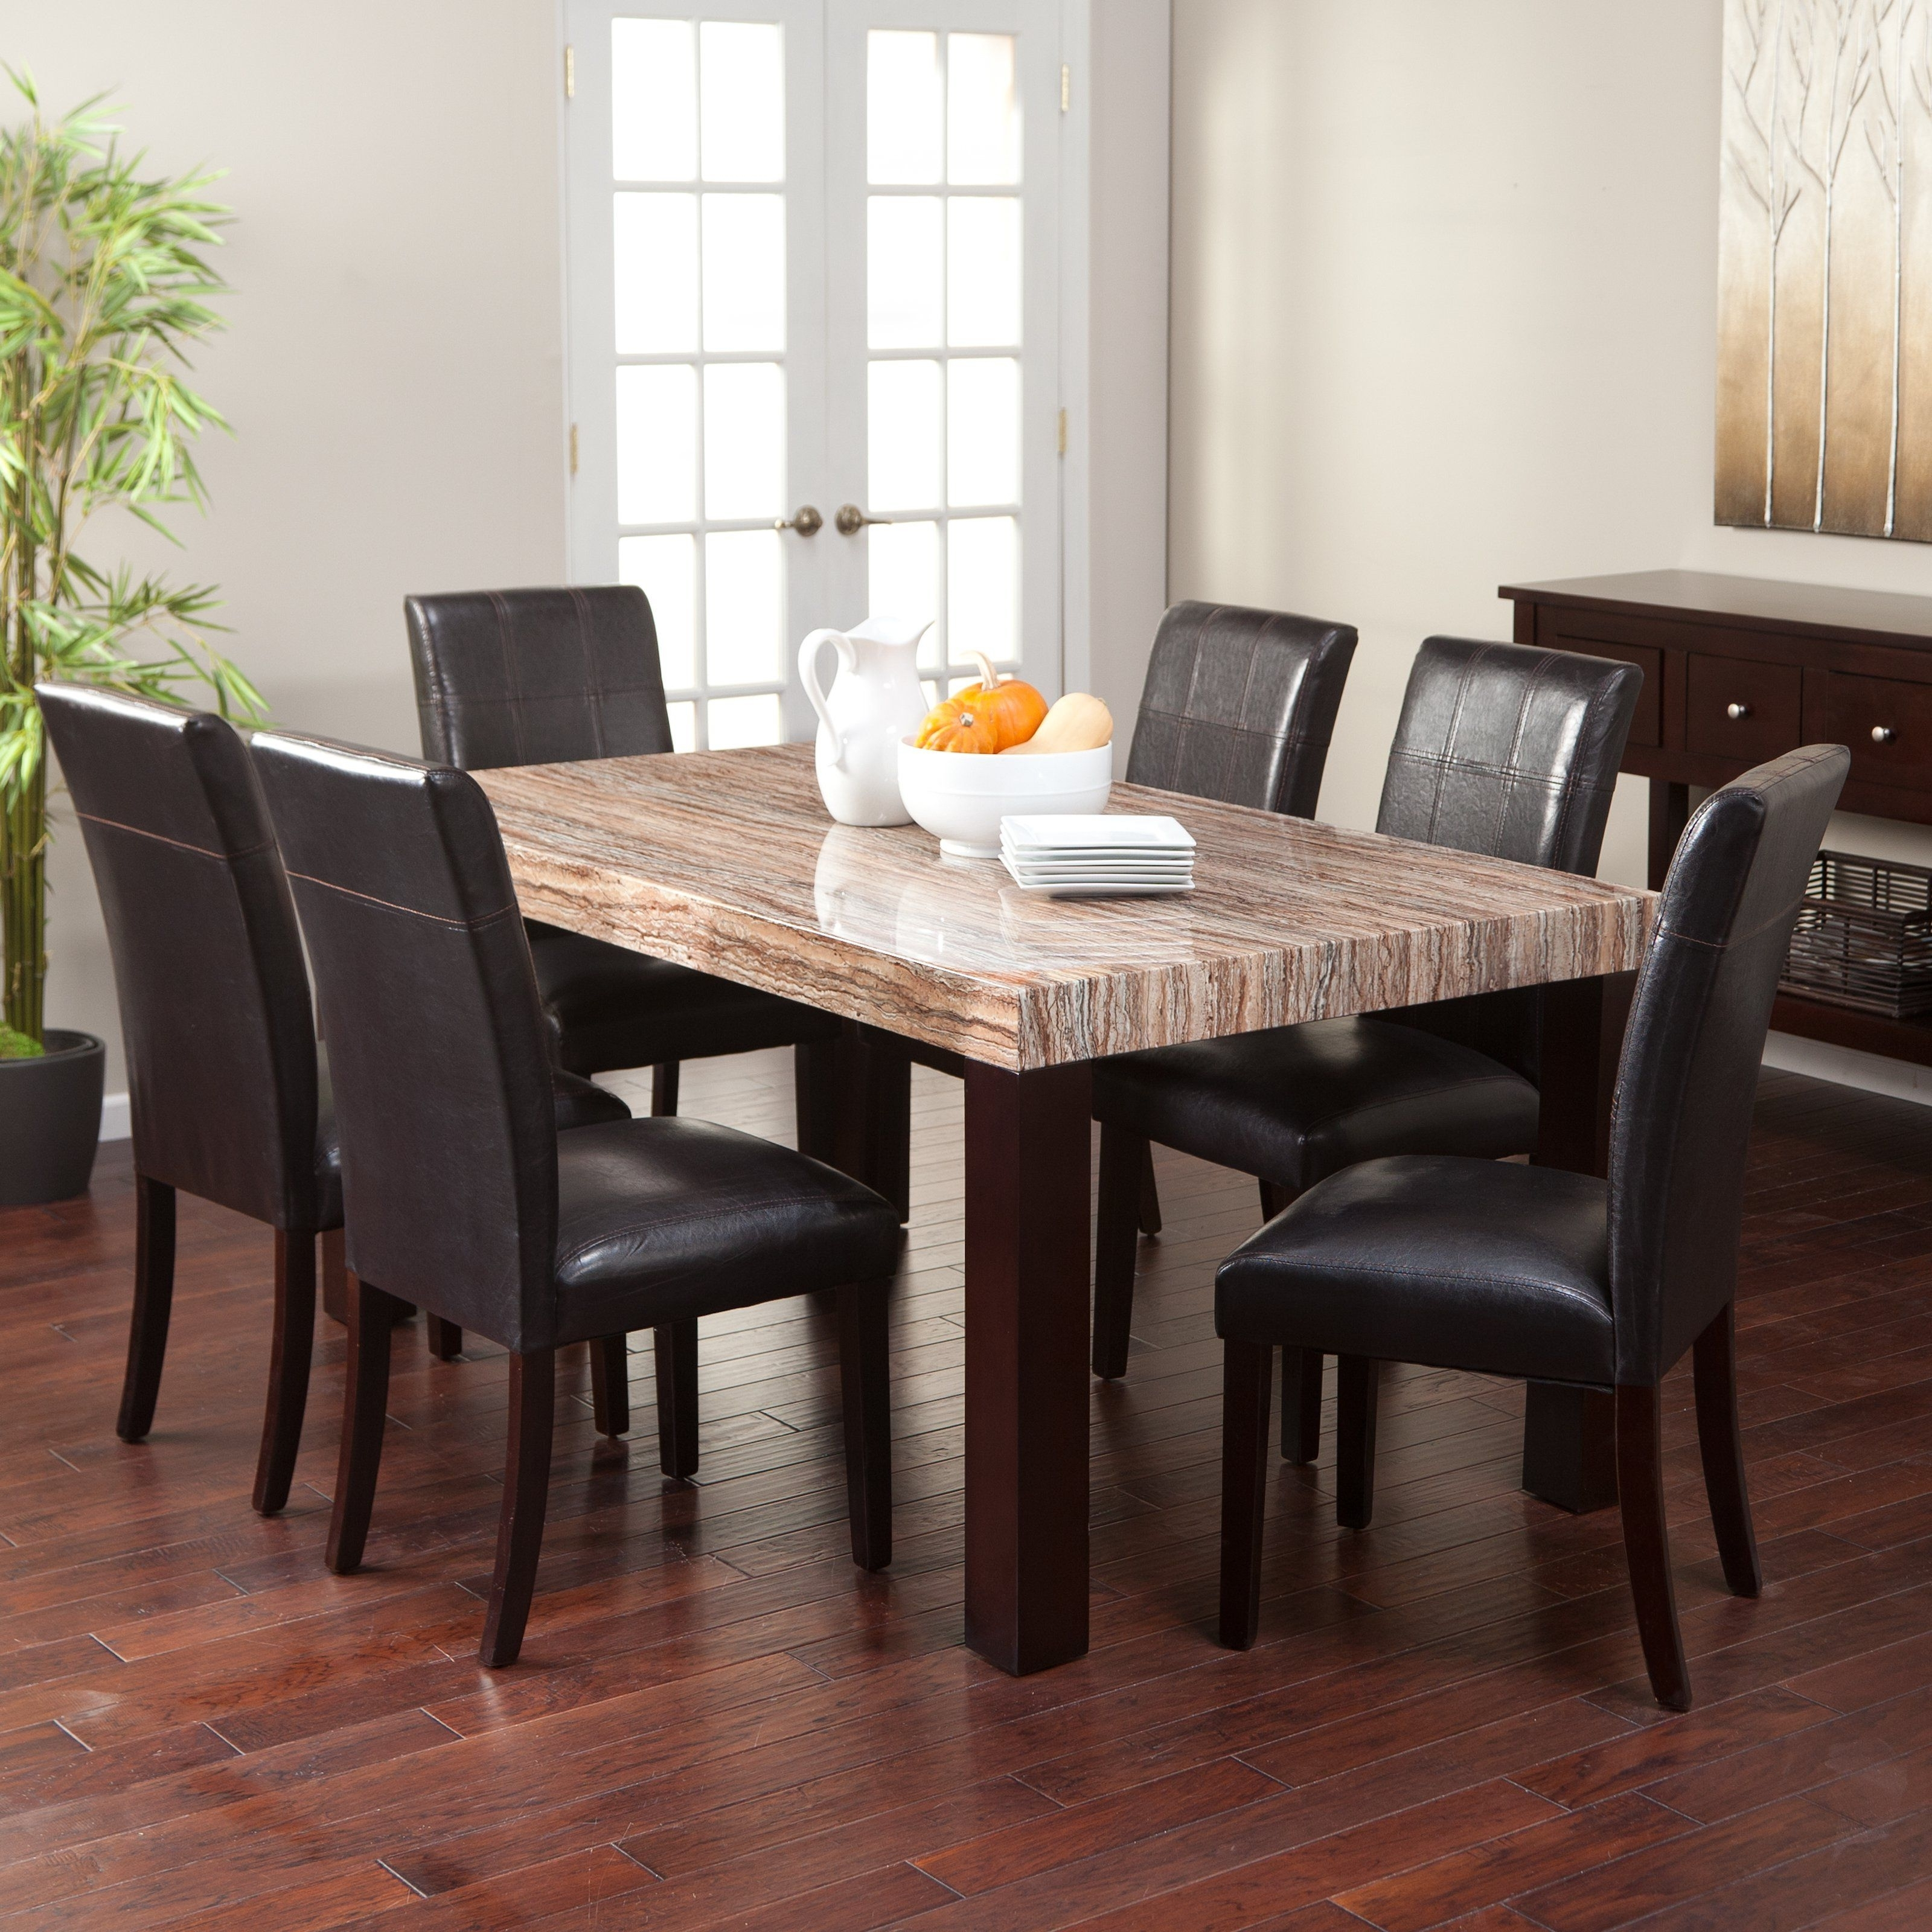 Leon 7 Piece Dining Sets Pertaining To Most Recent Carmine 7 Piece Dining Table Set – With Its Creamy Caramel Colored (View 10 of 25)